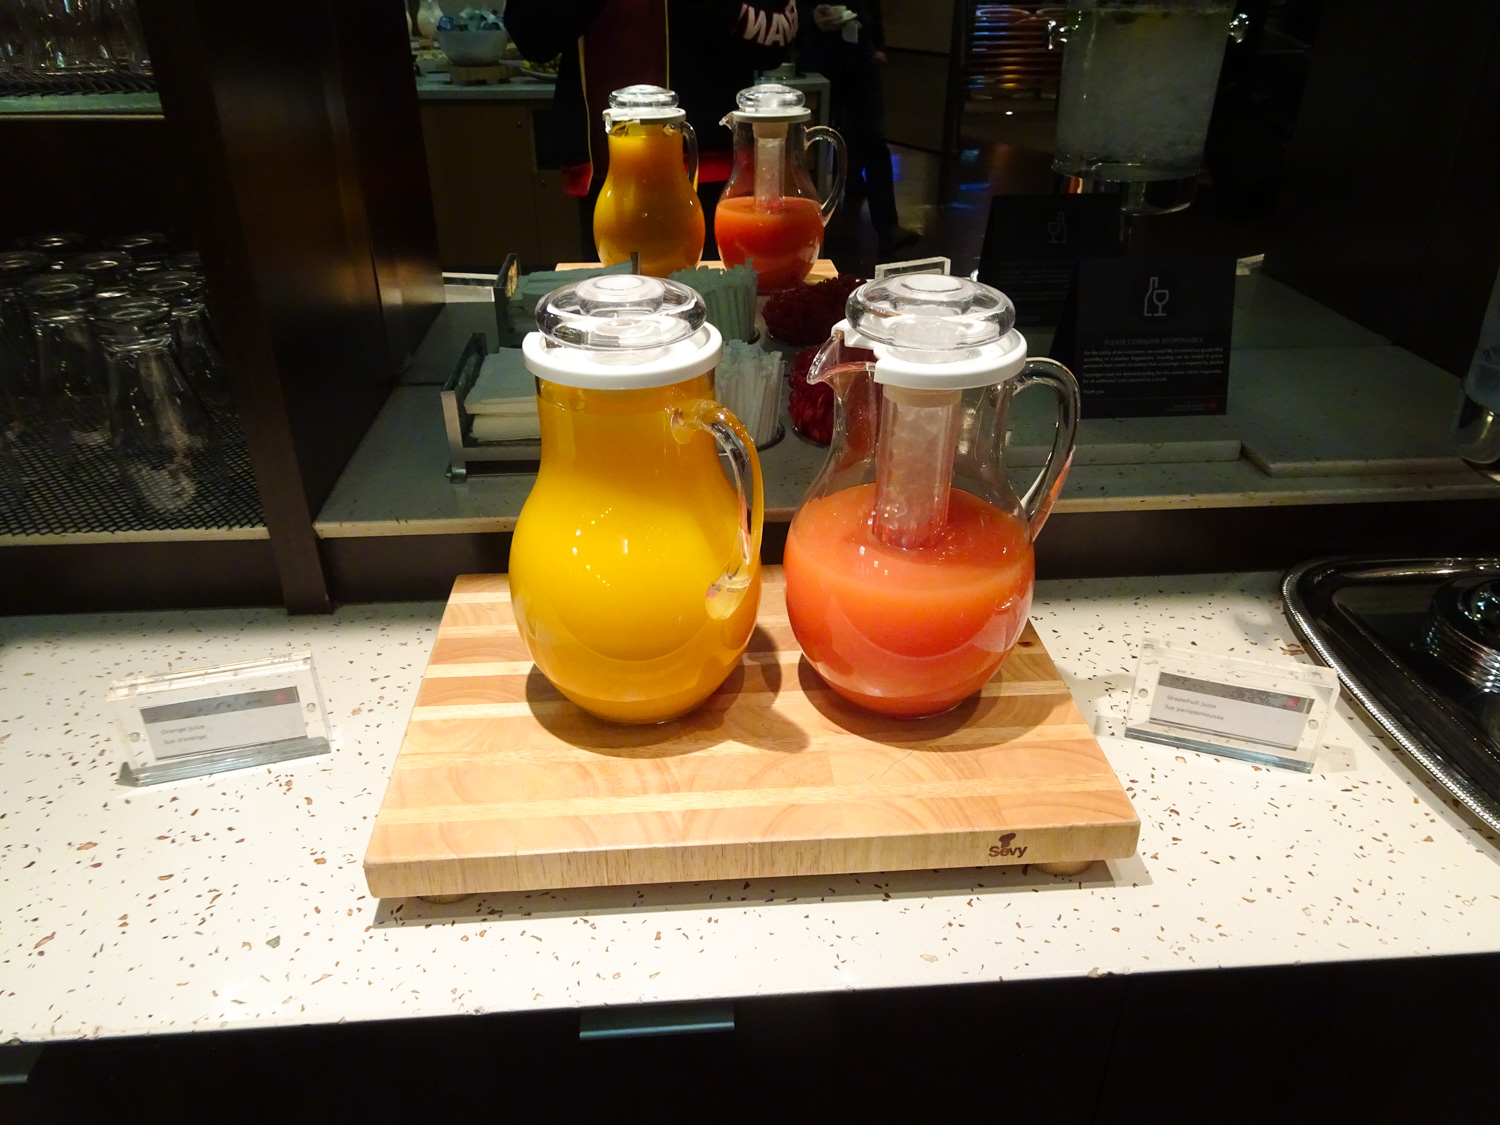 Tasty Juices - Air Canada Lounge - Vancouver  Photo: Calvin Wood